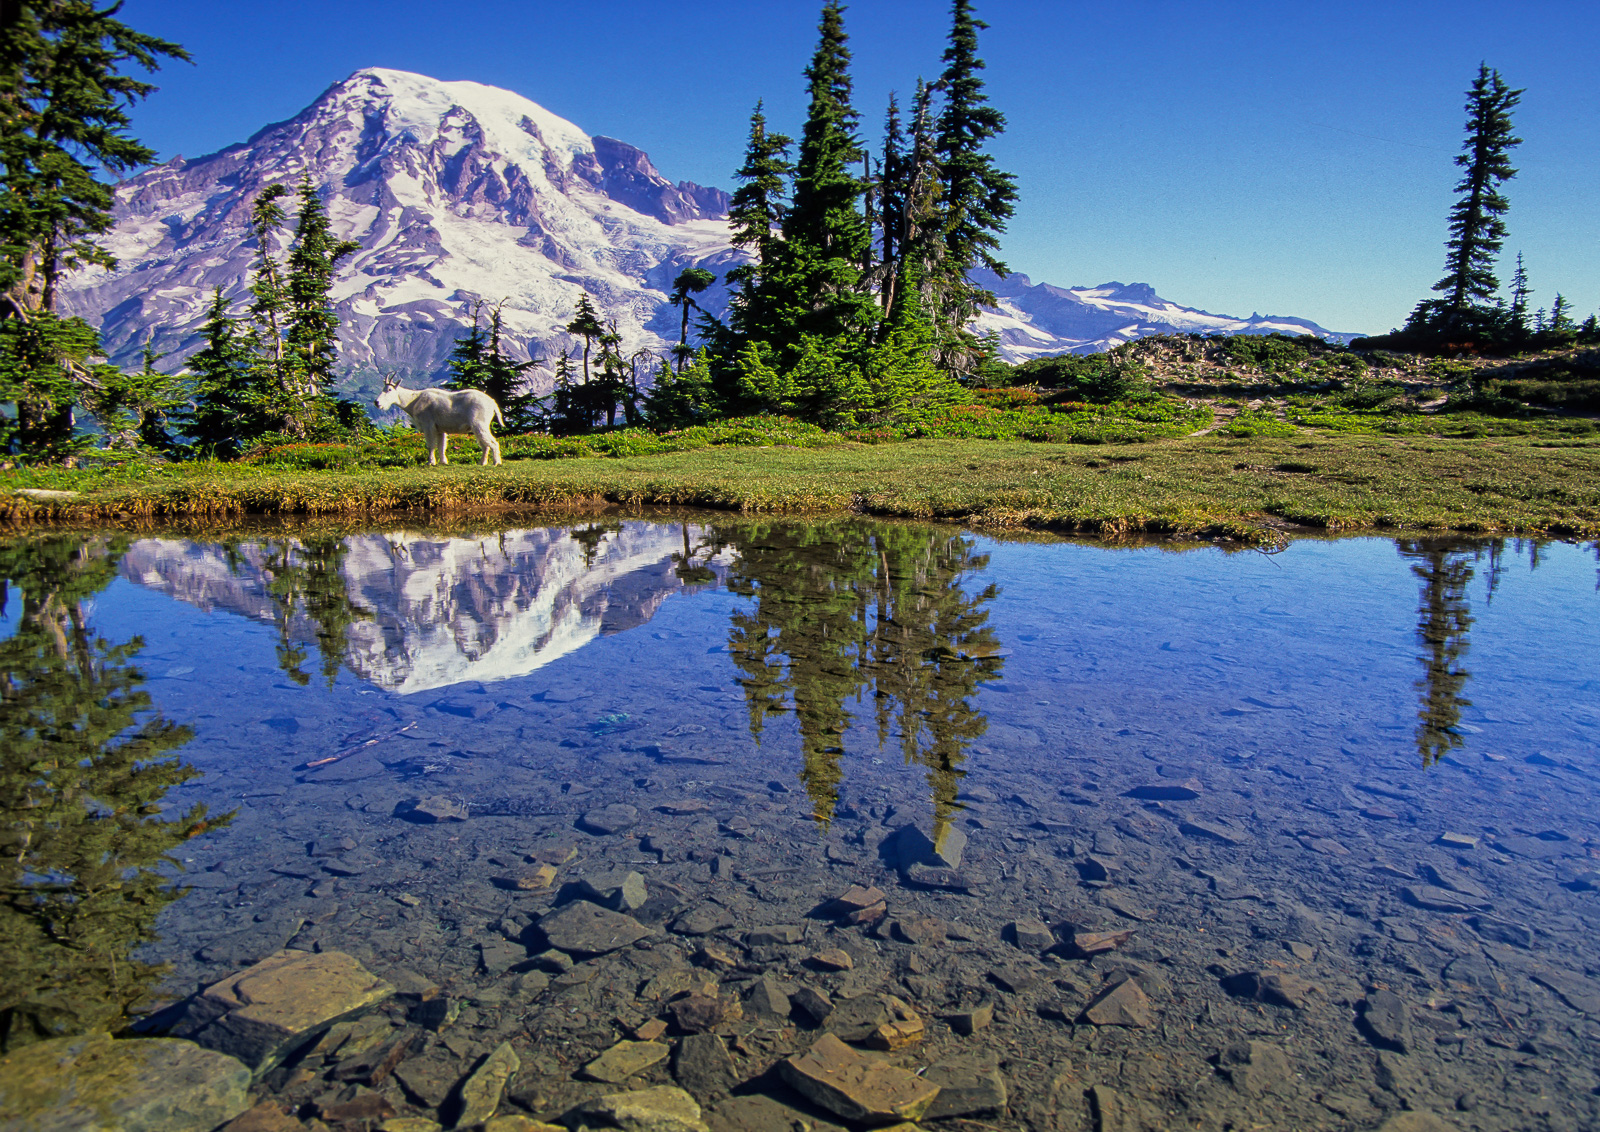 Mount Rainier and Mountain Goat Reflecting in Tarn, Mount Rainier National Park